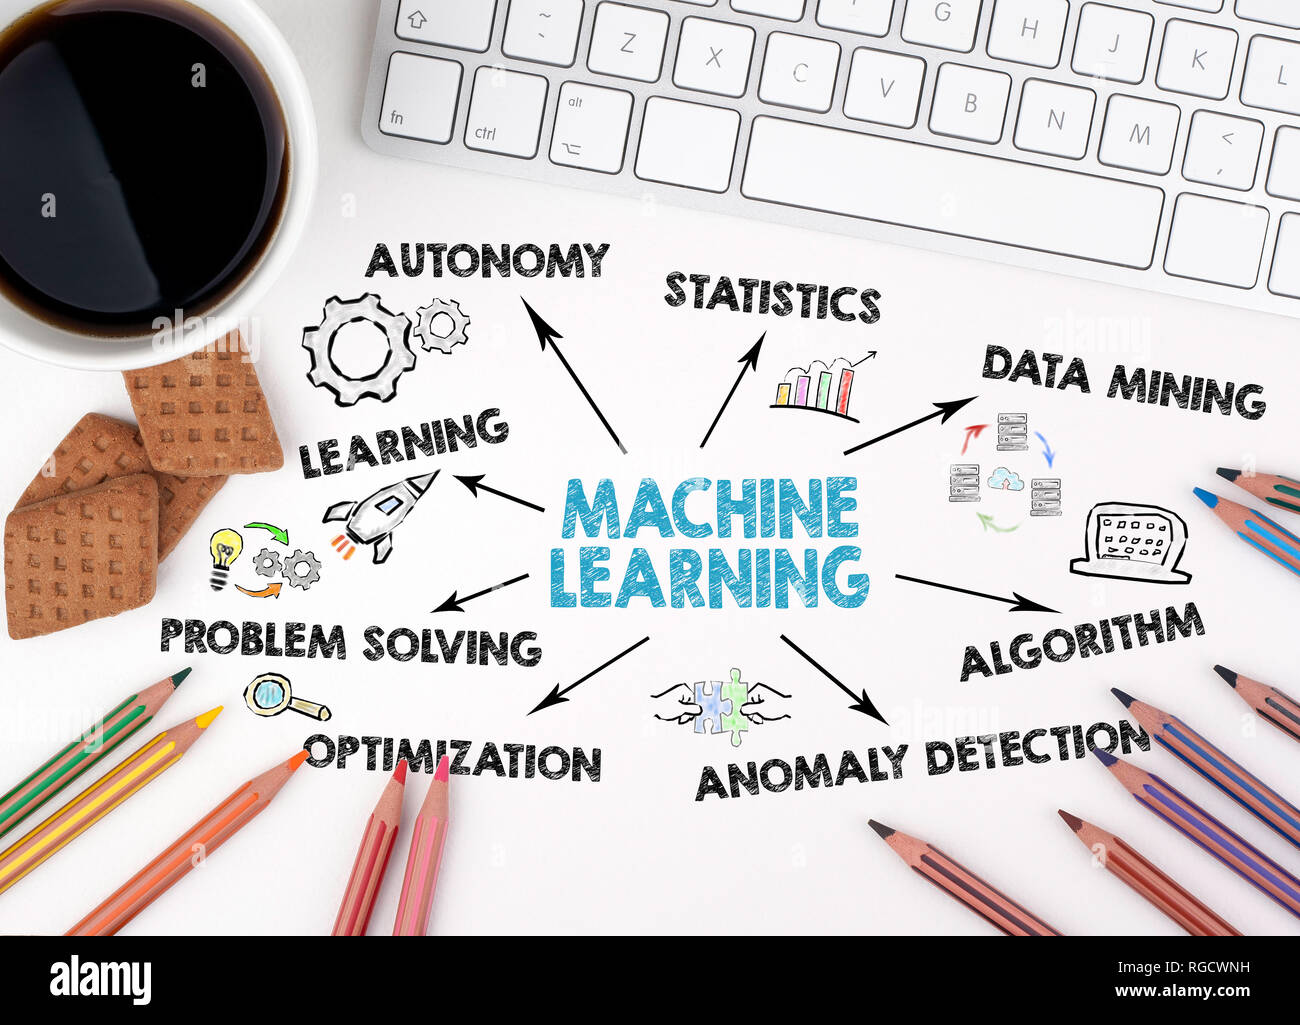 Machine Learning concept. Chart with keywords and icons - Stock Image